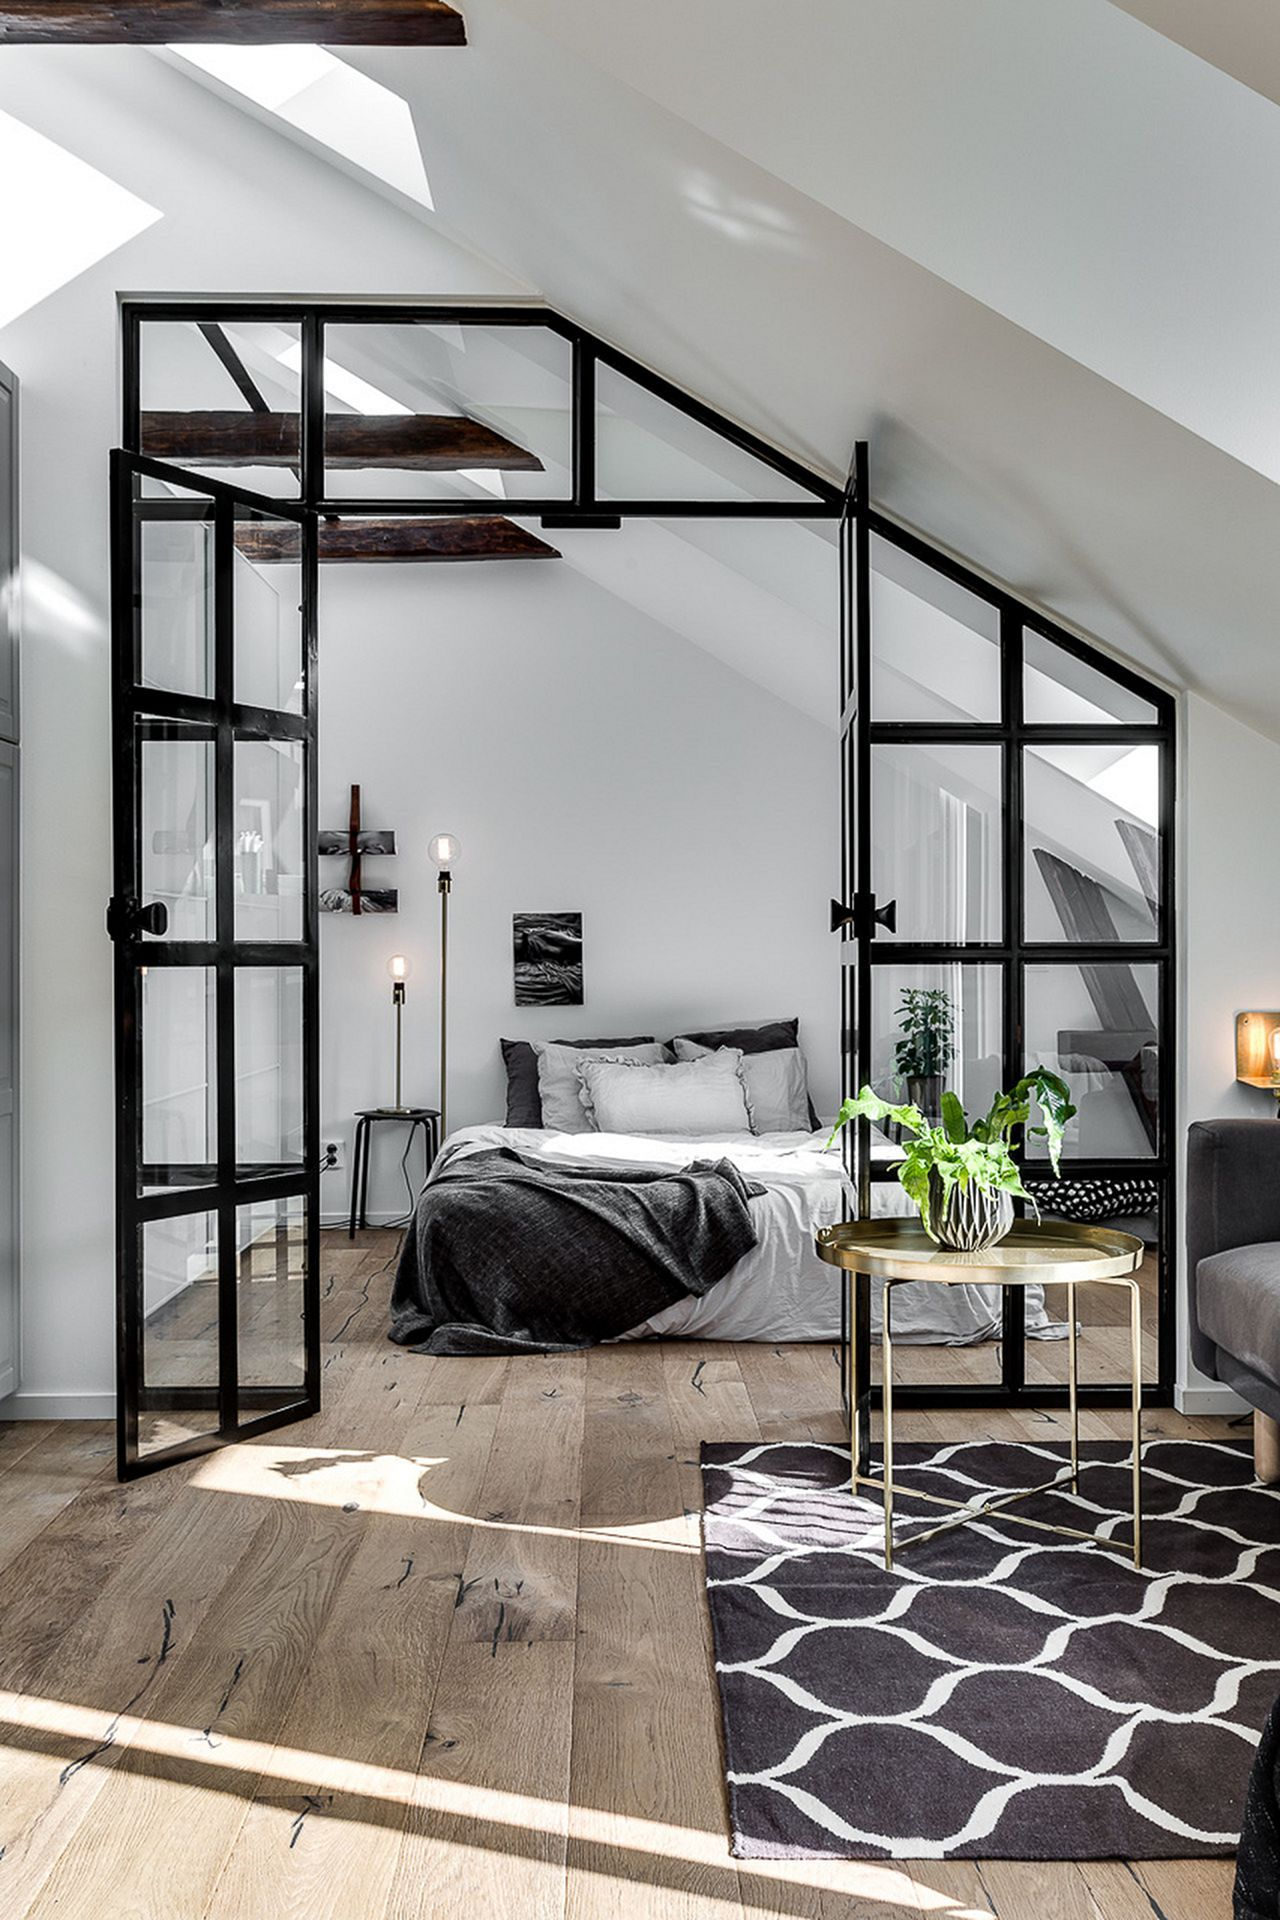 Awesome Industrial Bedroom Design Ideas For